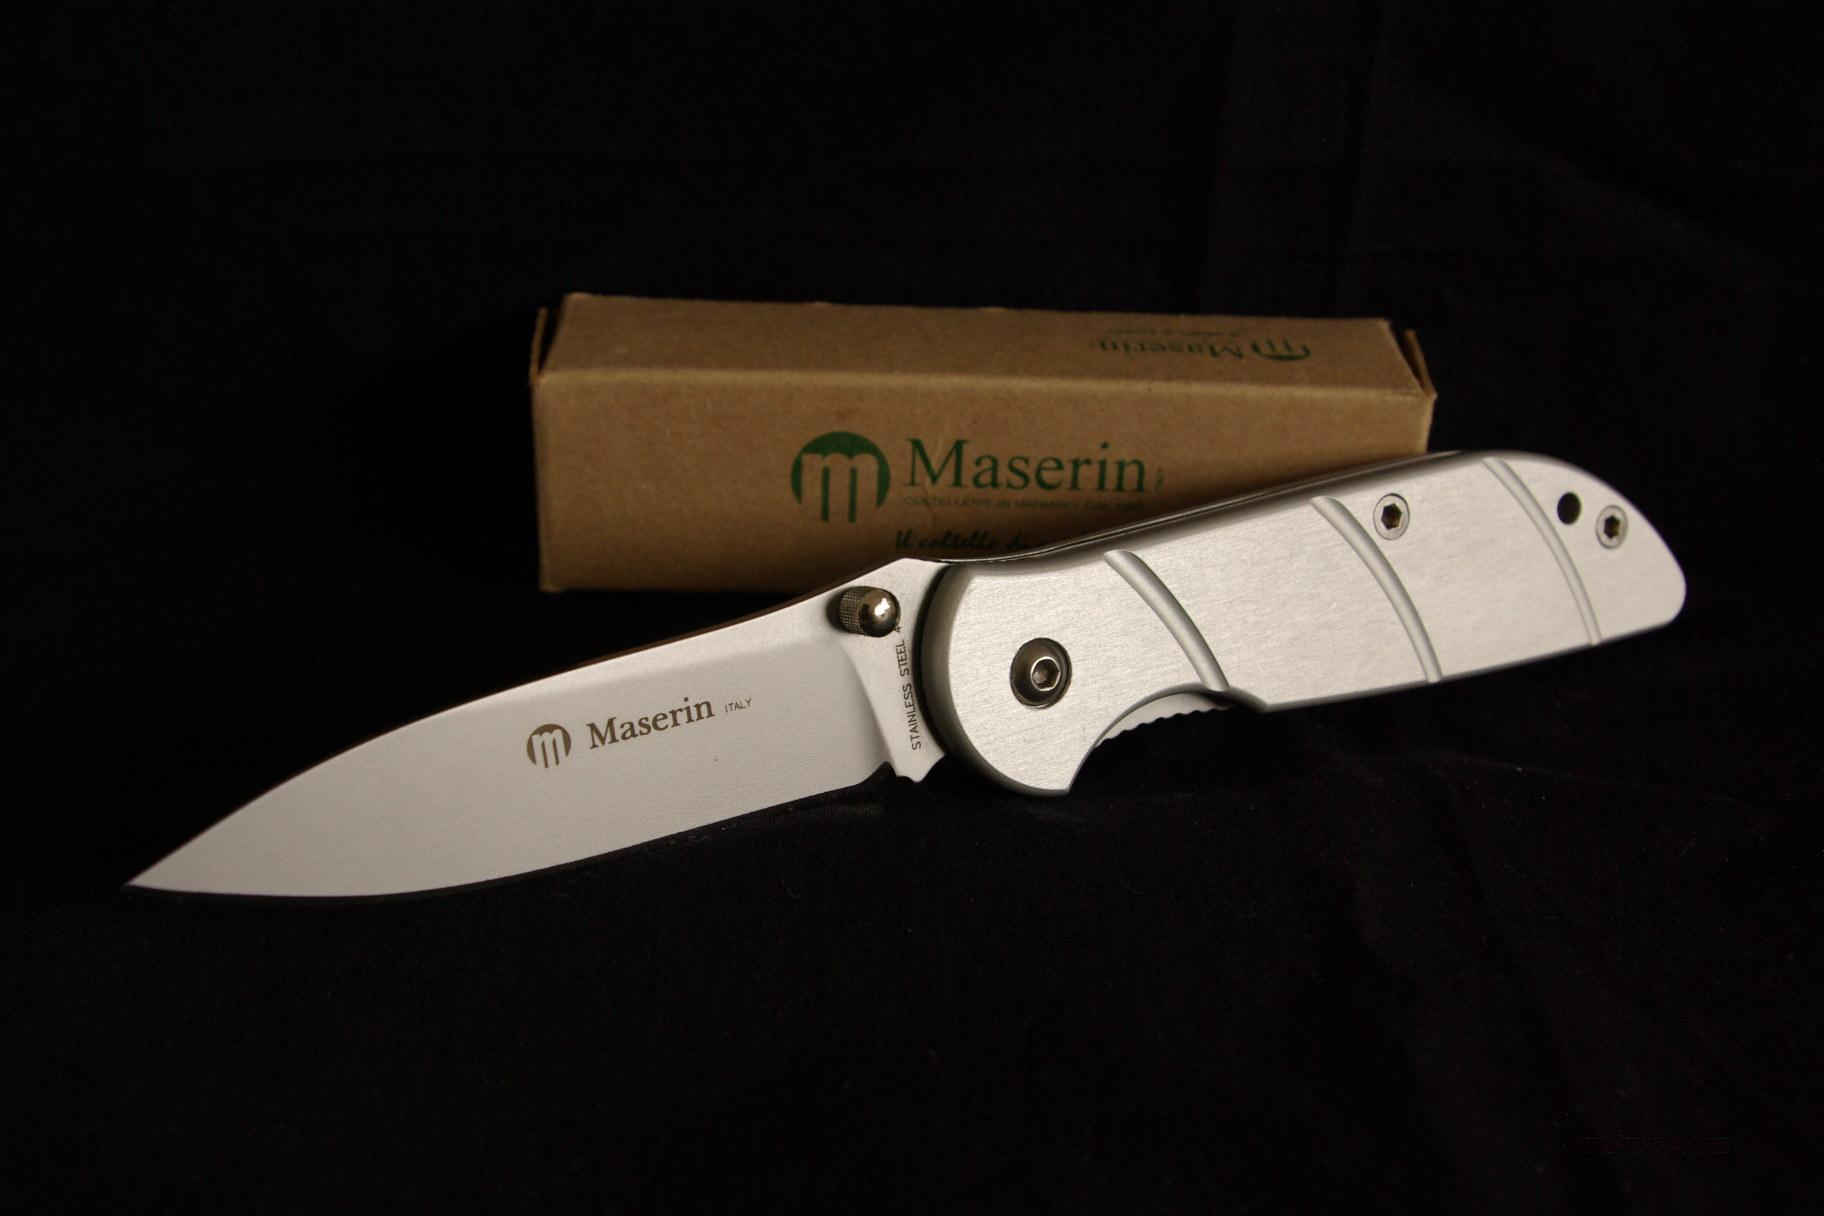 Maserin Knife Made in Italy  Non-Guns > Knives/Swords > Knives > Folding Blade > Imported